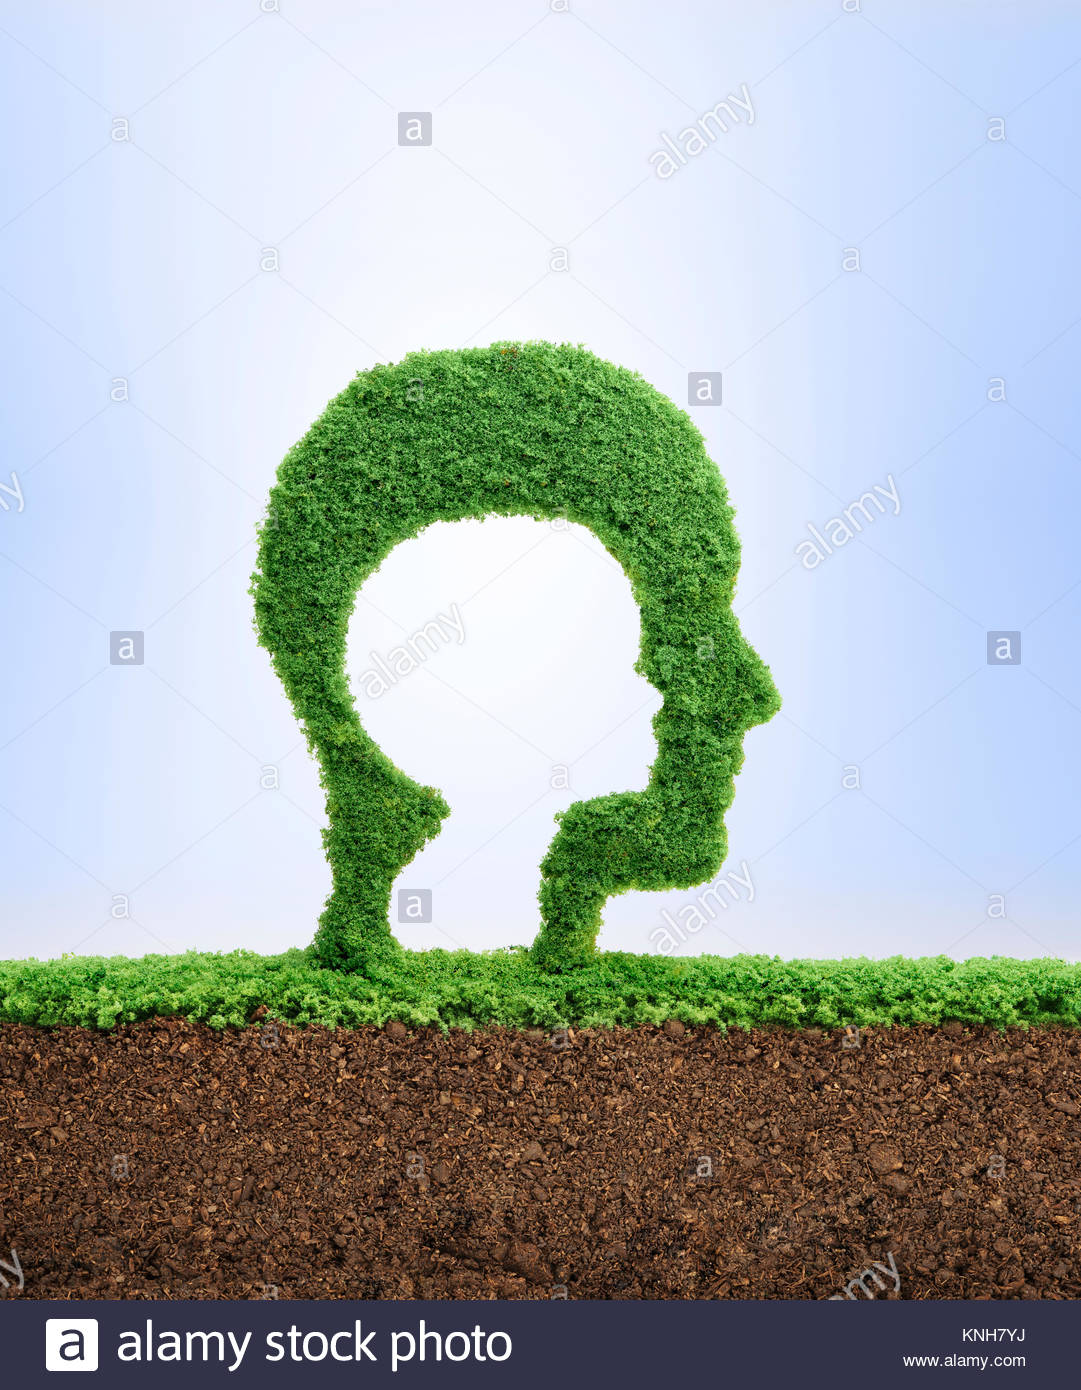 Childhood is the seed of adulthood. Childhood nostalgia concept, with grass growing in the shape of a cut out child - Stock Image